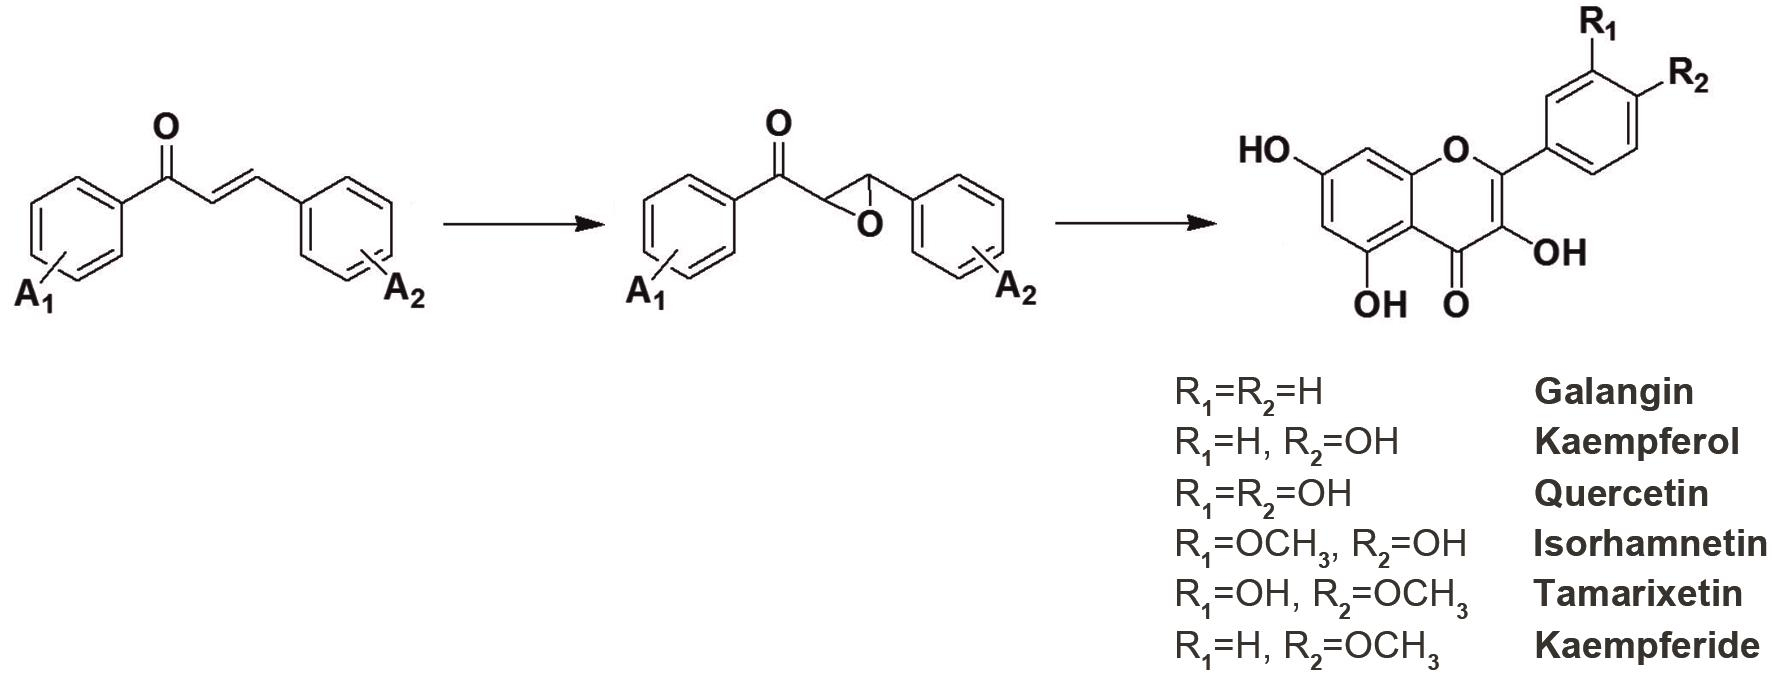 Synthesis of flavonols.